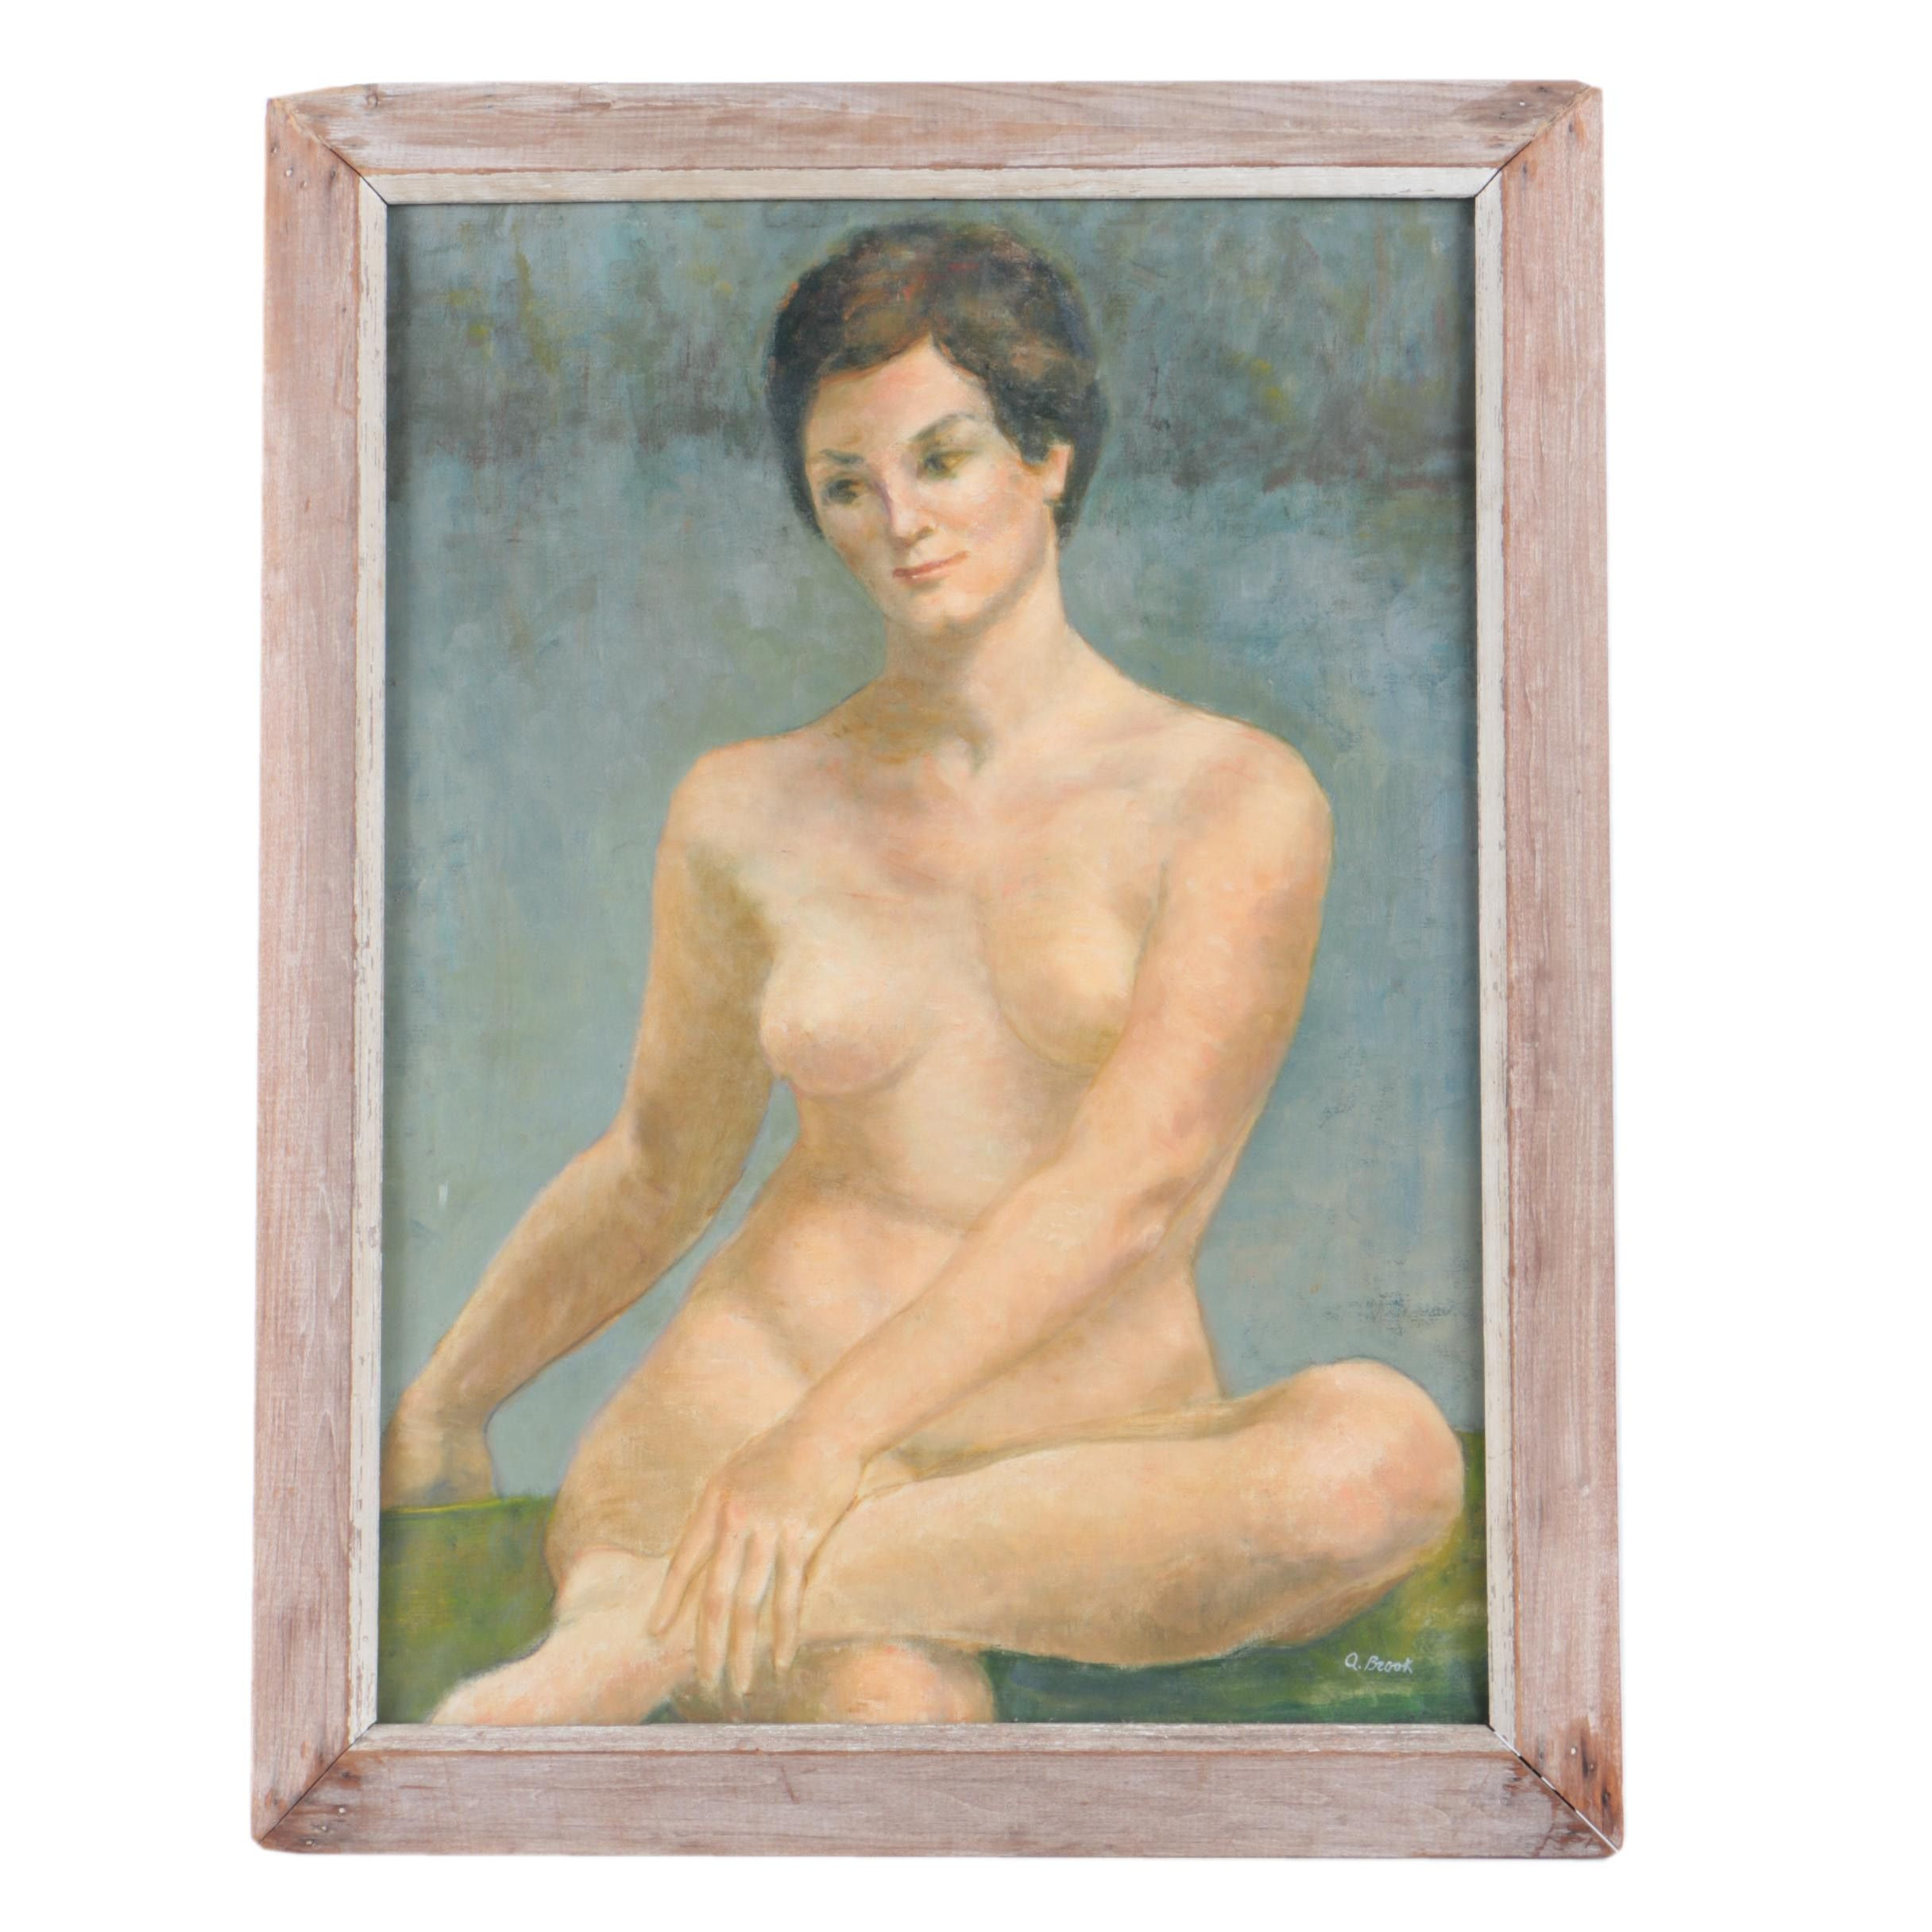 Oil Painting on Canvas of Nude Figure in the Manner of Alexander Brook